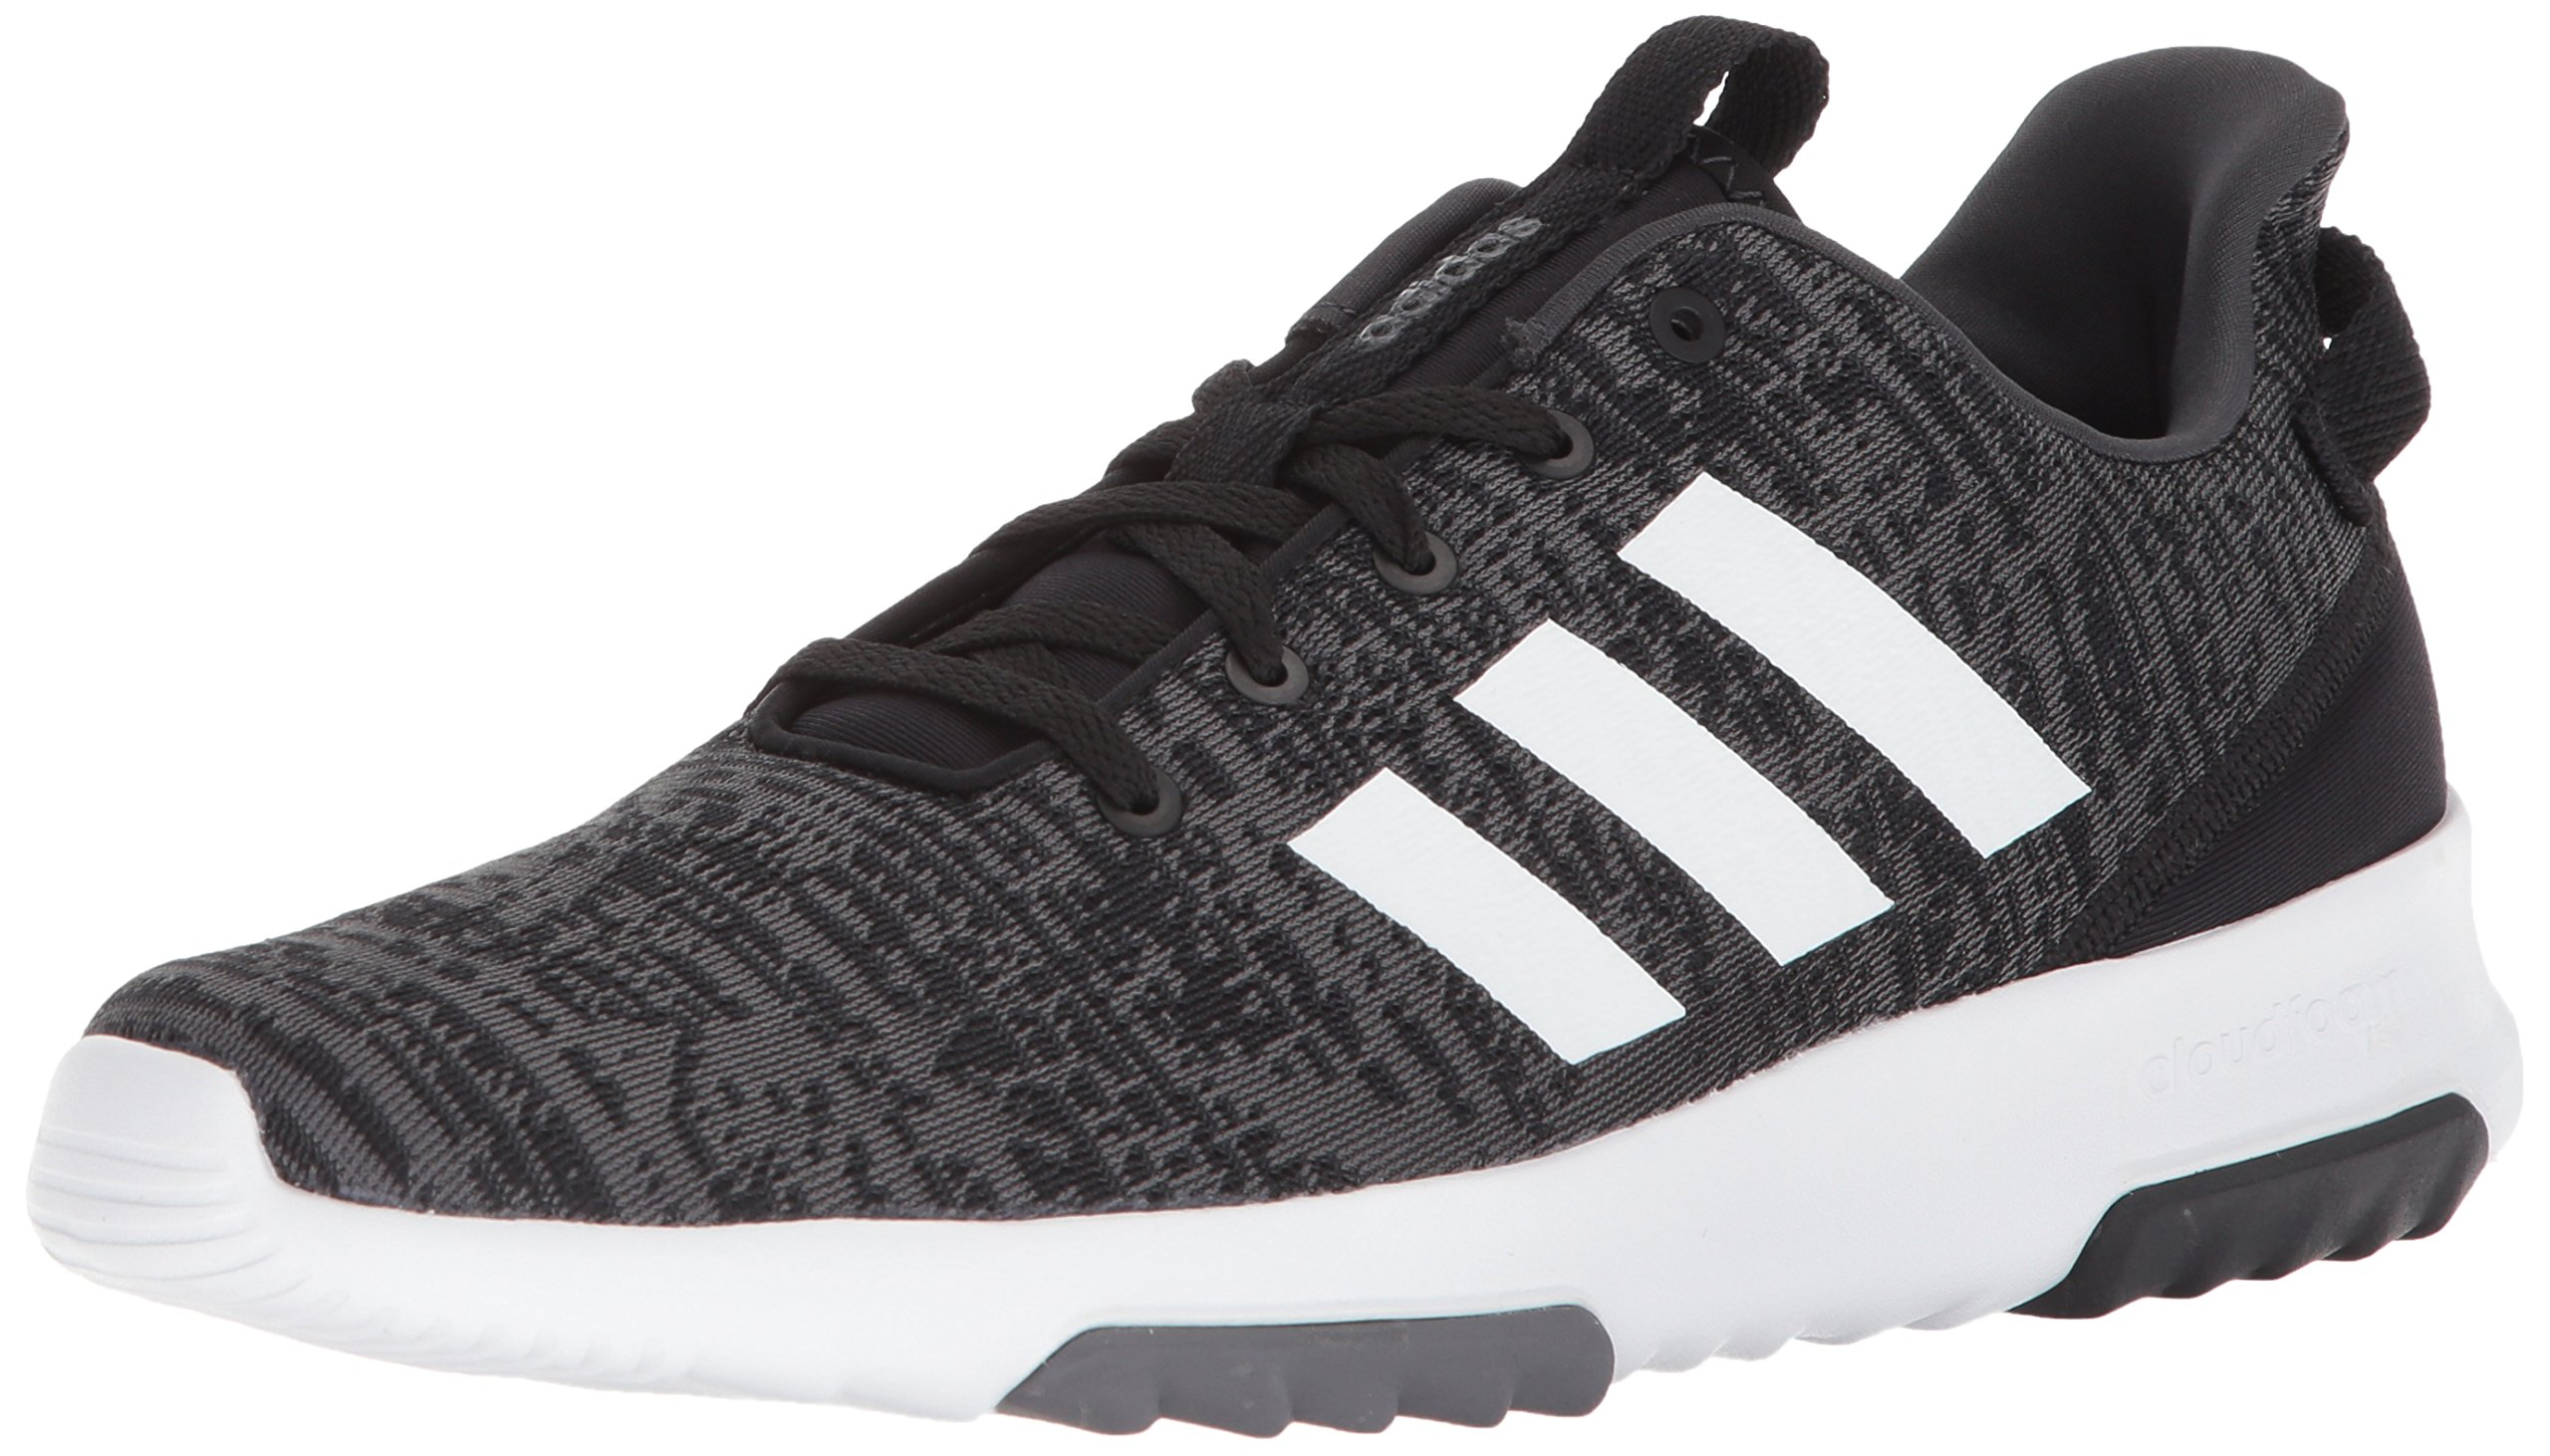 adidas Men's Cf Racer Tr, Core Black/White/Carbon, 9 M US by adidas